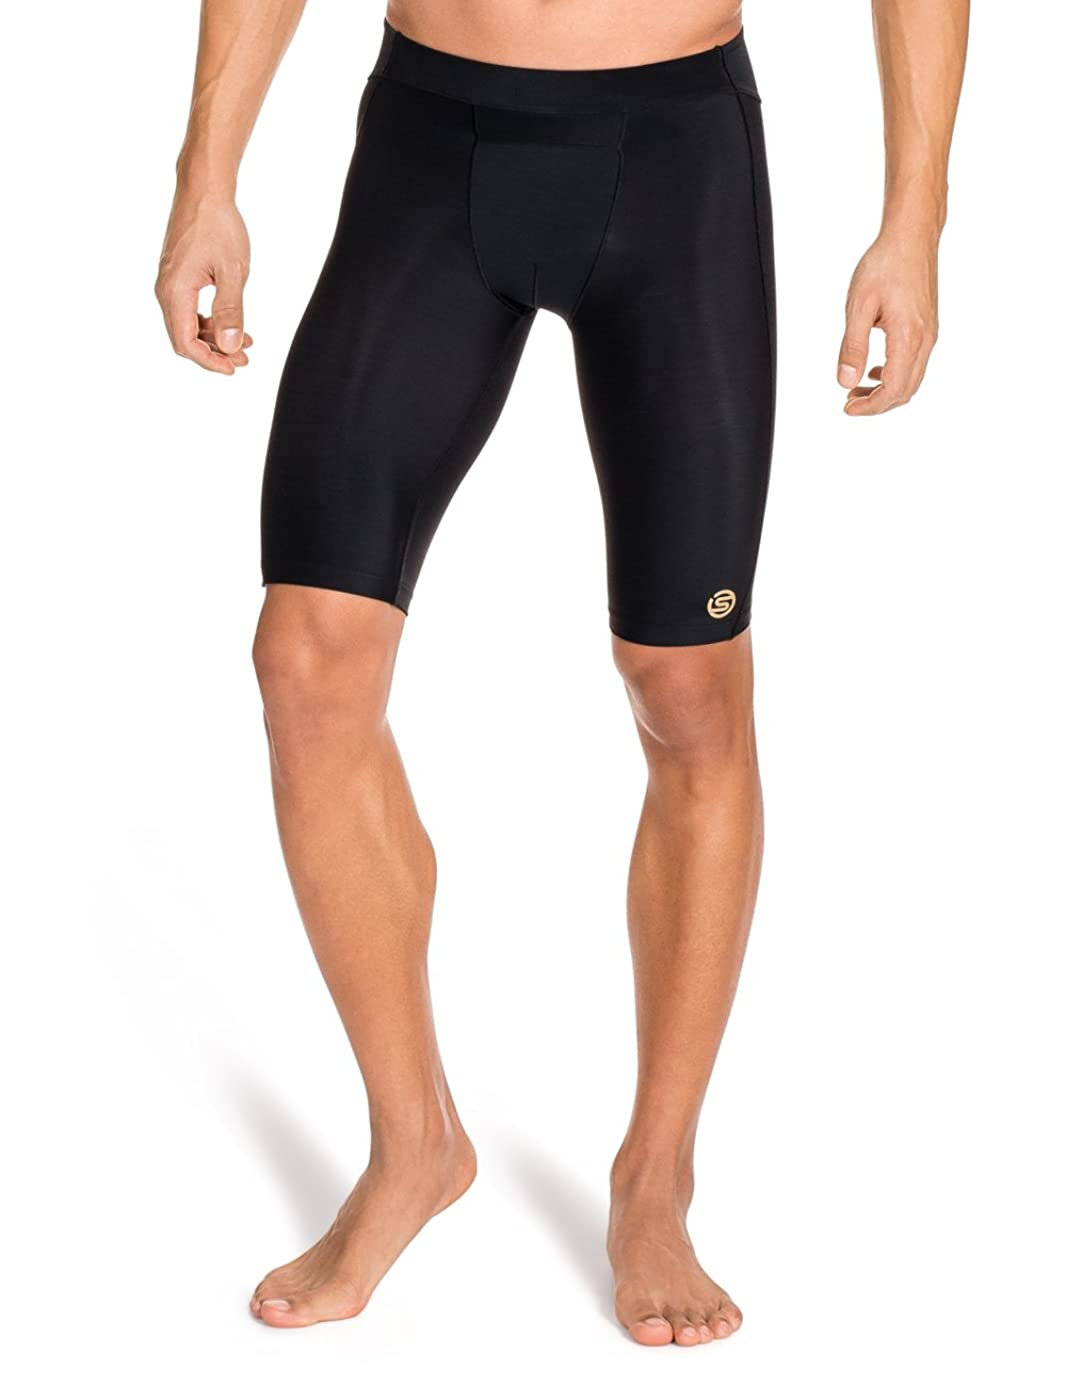 Skins Men's A400 Compression 1/2 Tights/Shorts